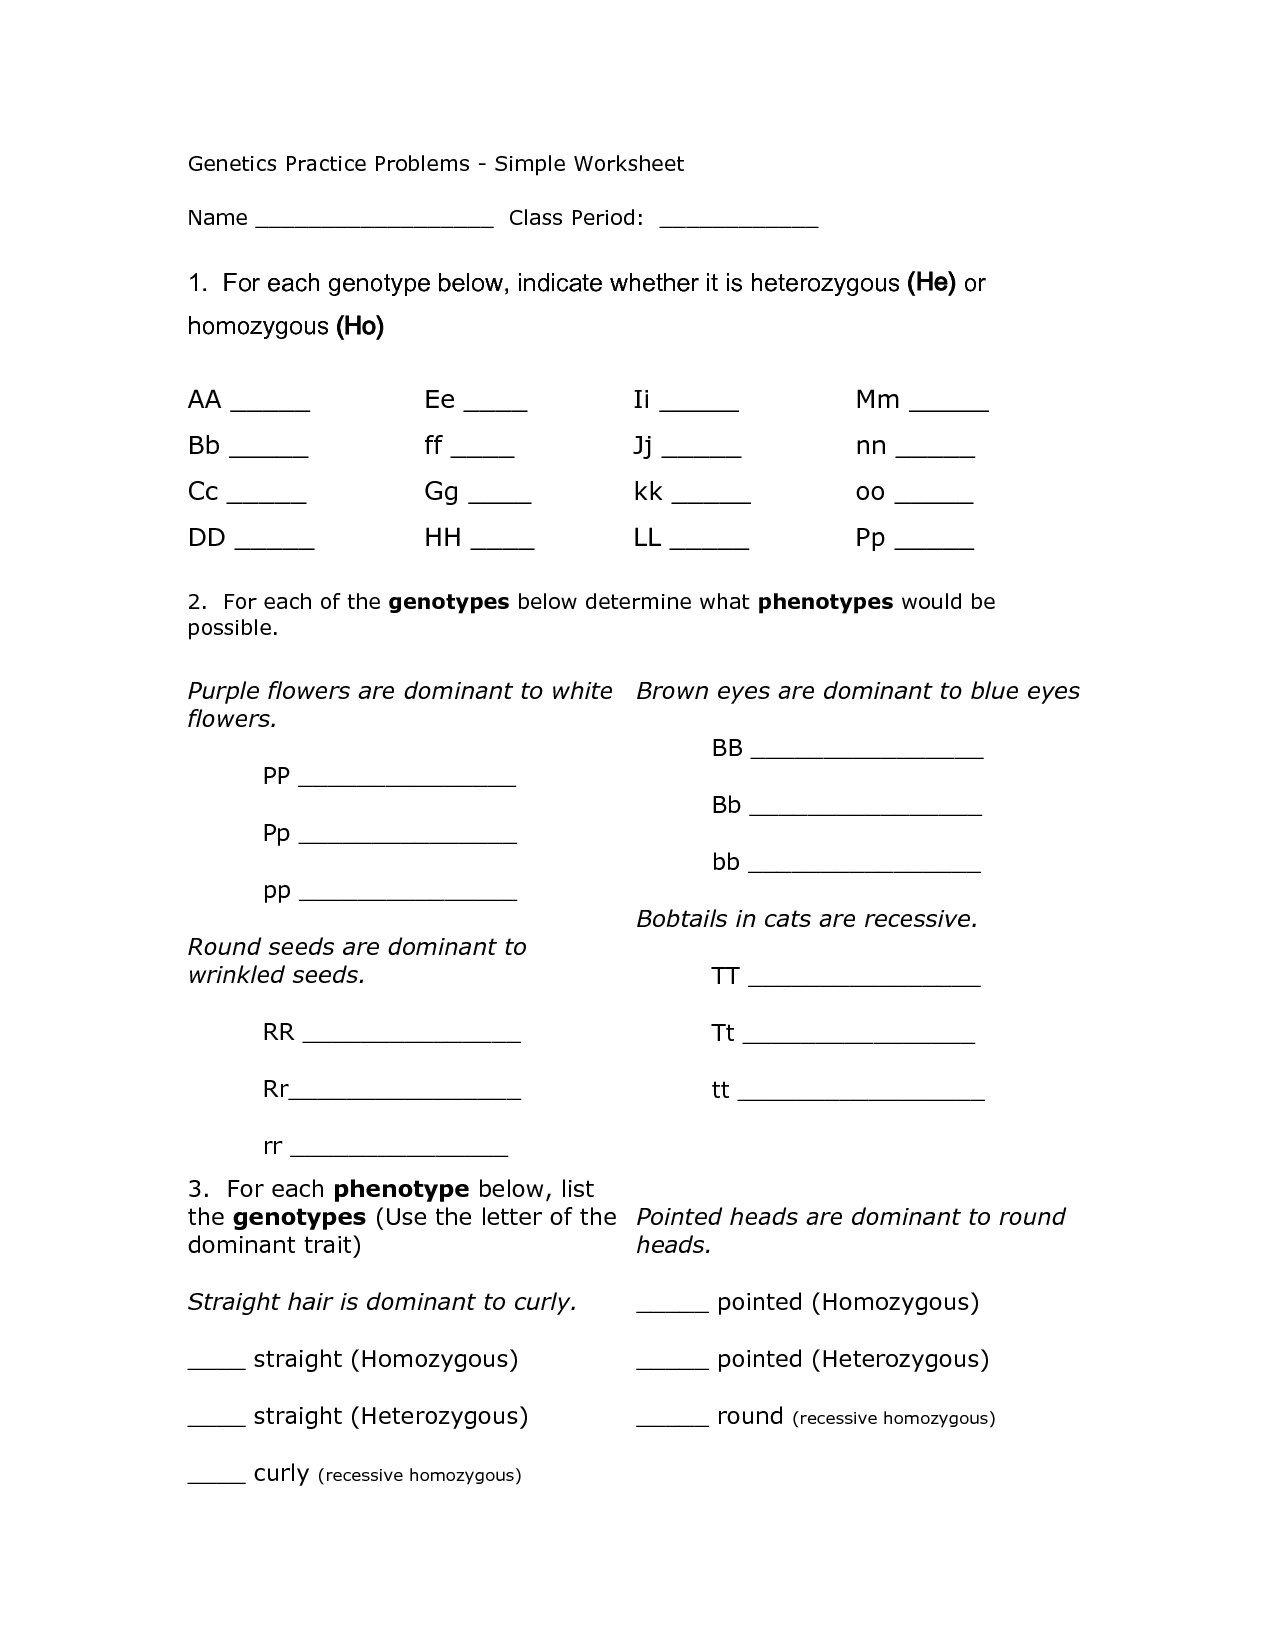 14 Best Images of Genetics Problems Worksheet With Answer